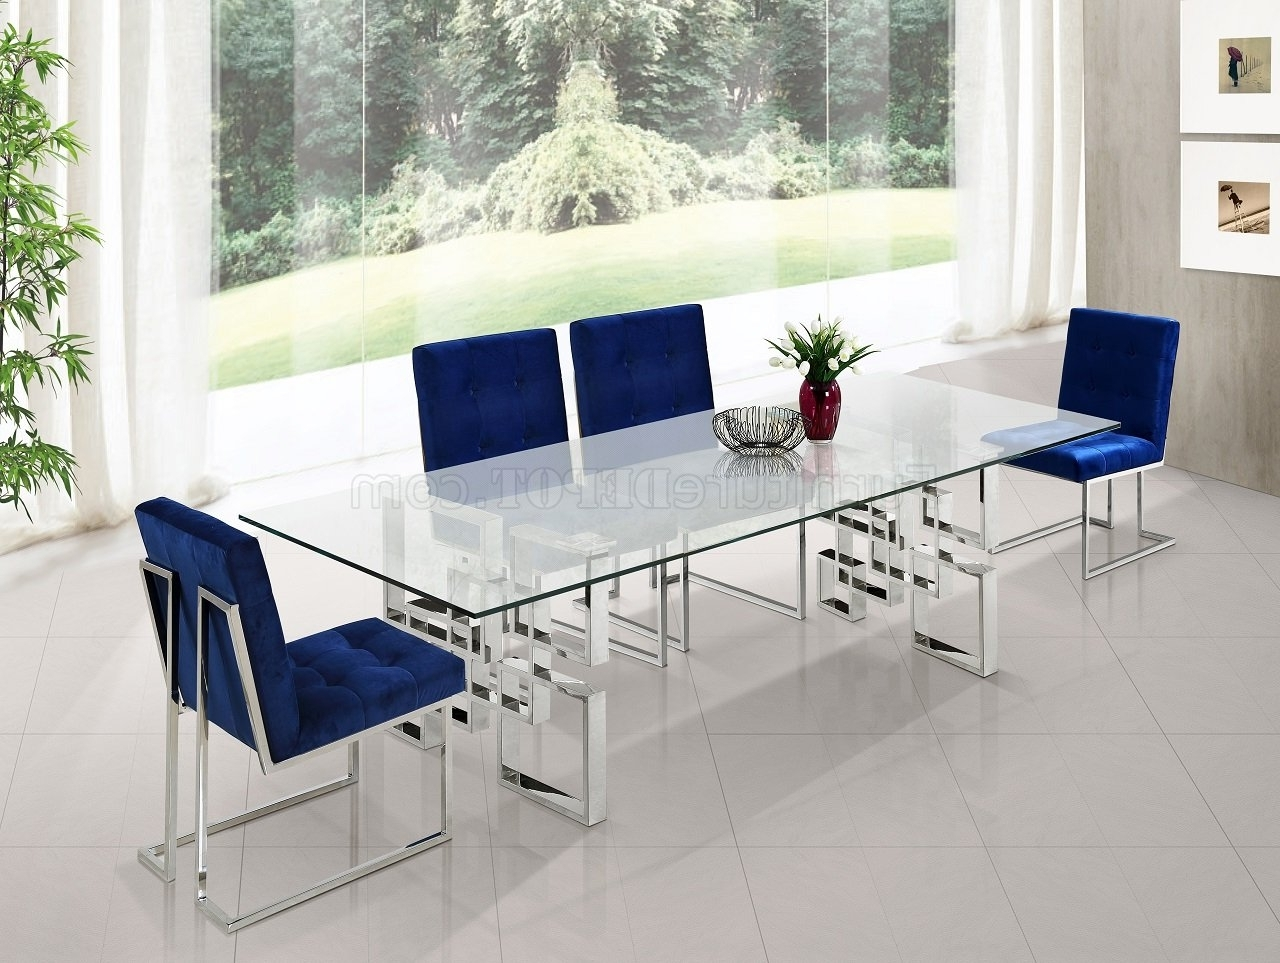 Popular Alexis 731 Chrome Dining Table W/glass Top & Optional Chairs For Chrome Dining Tables (View 20 of 25)